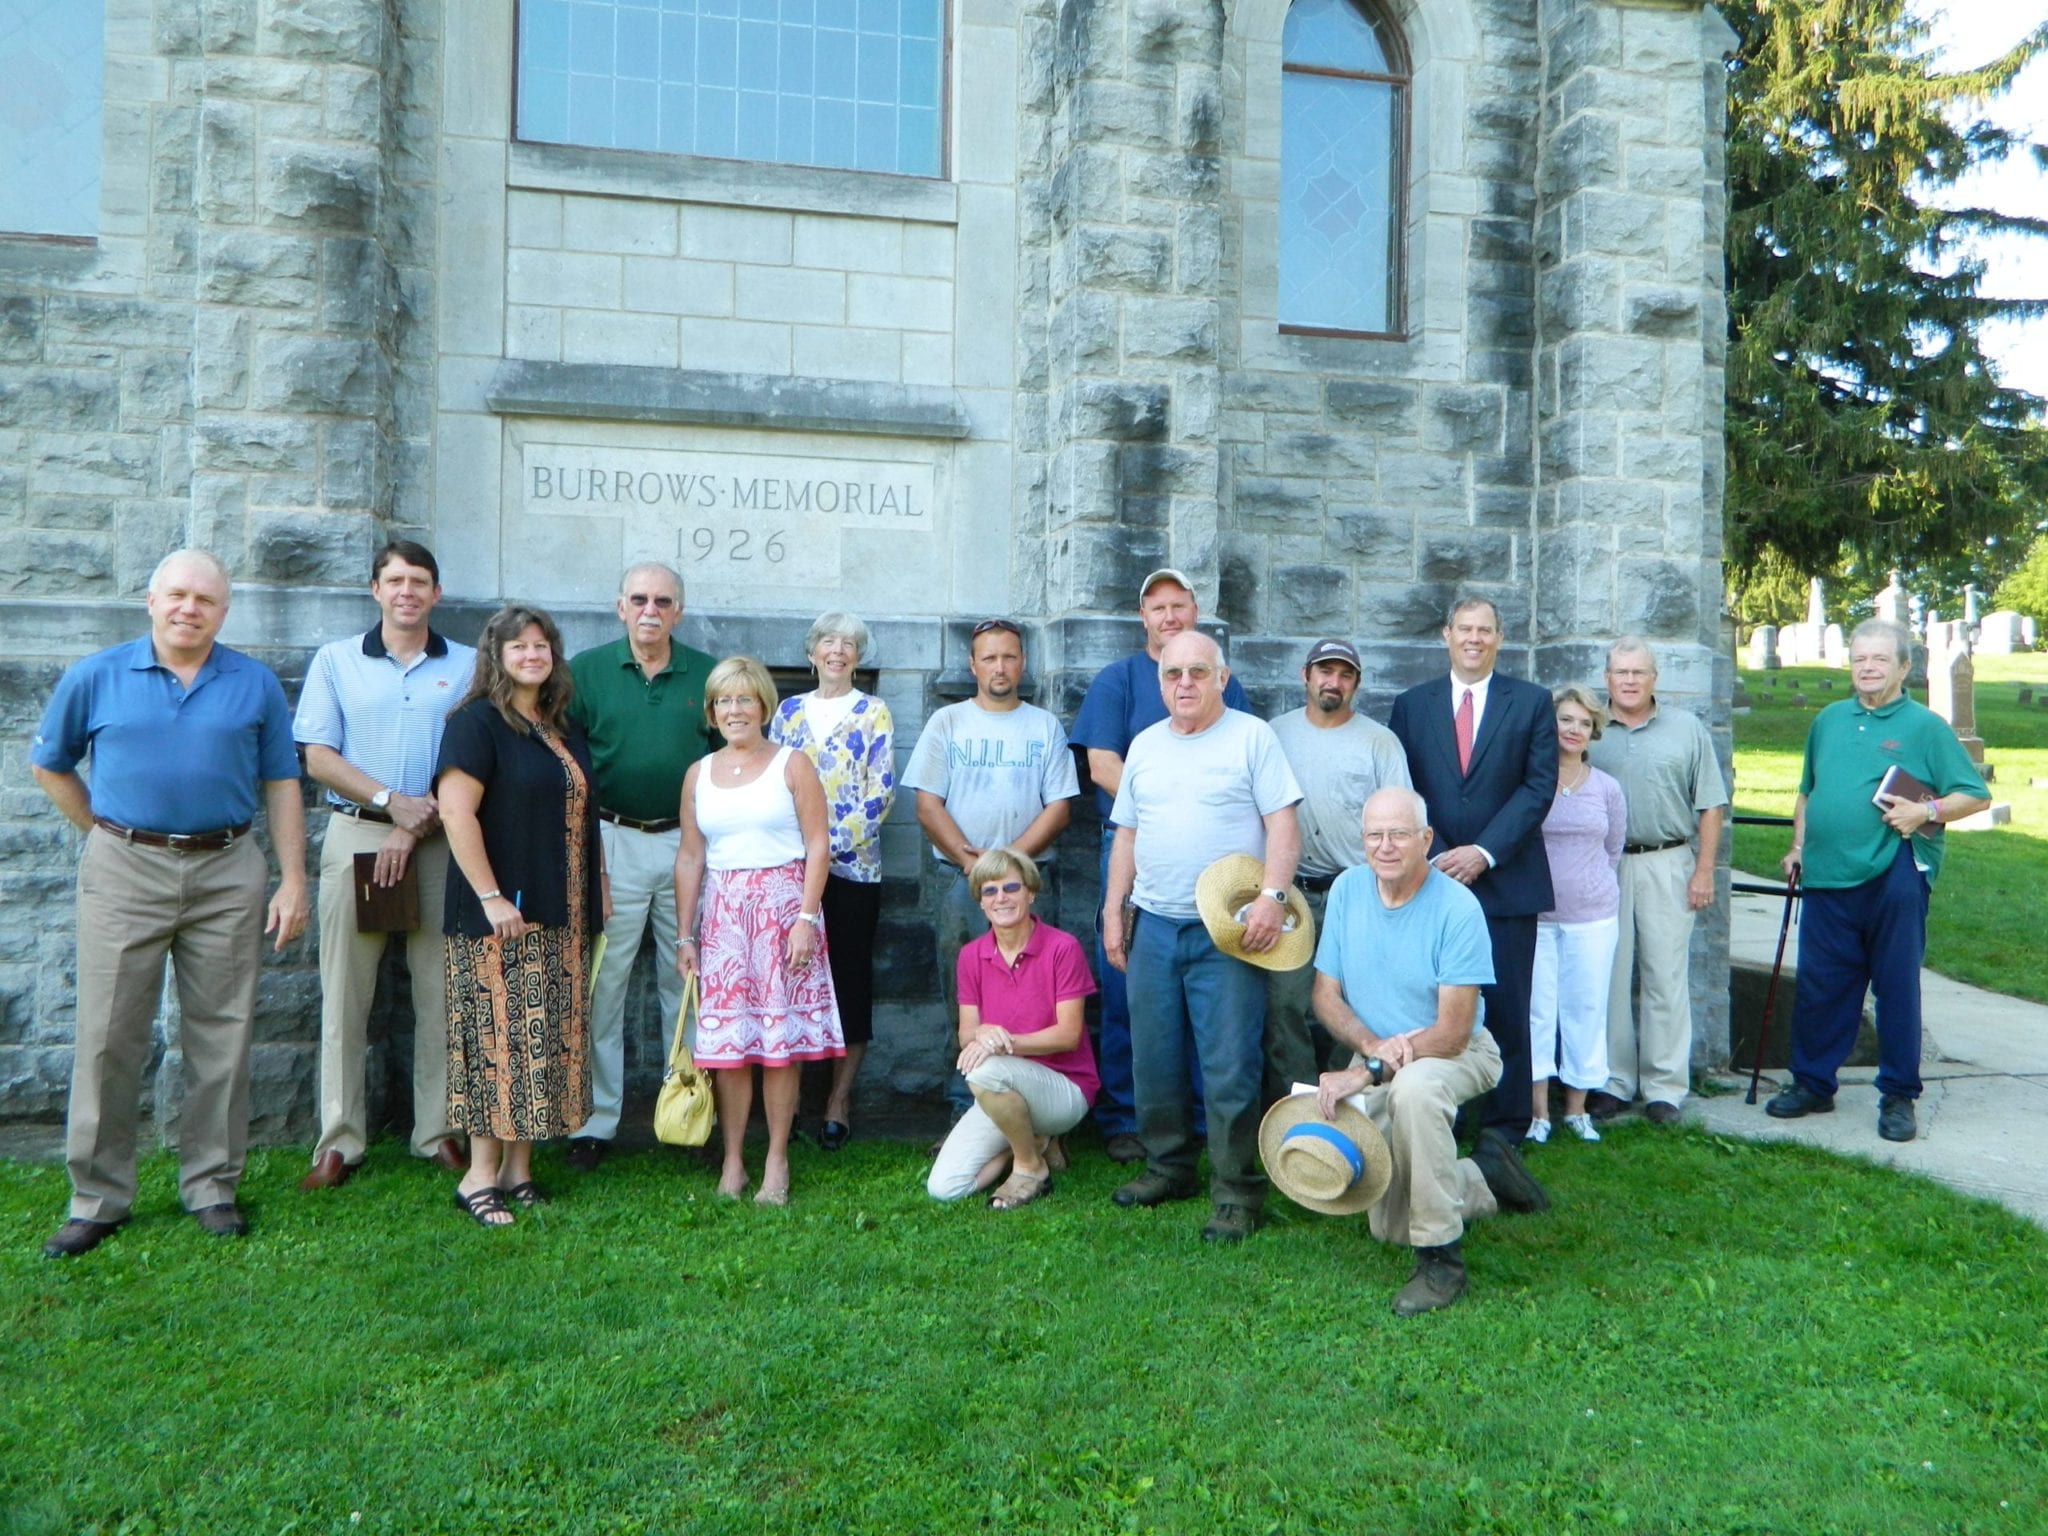 Burrows Chapel renovated roof dedicated